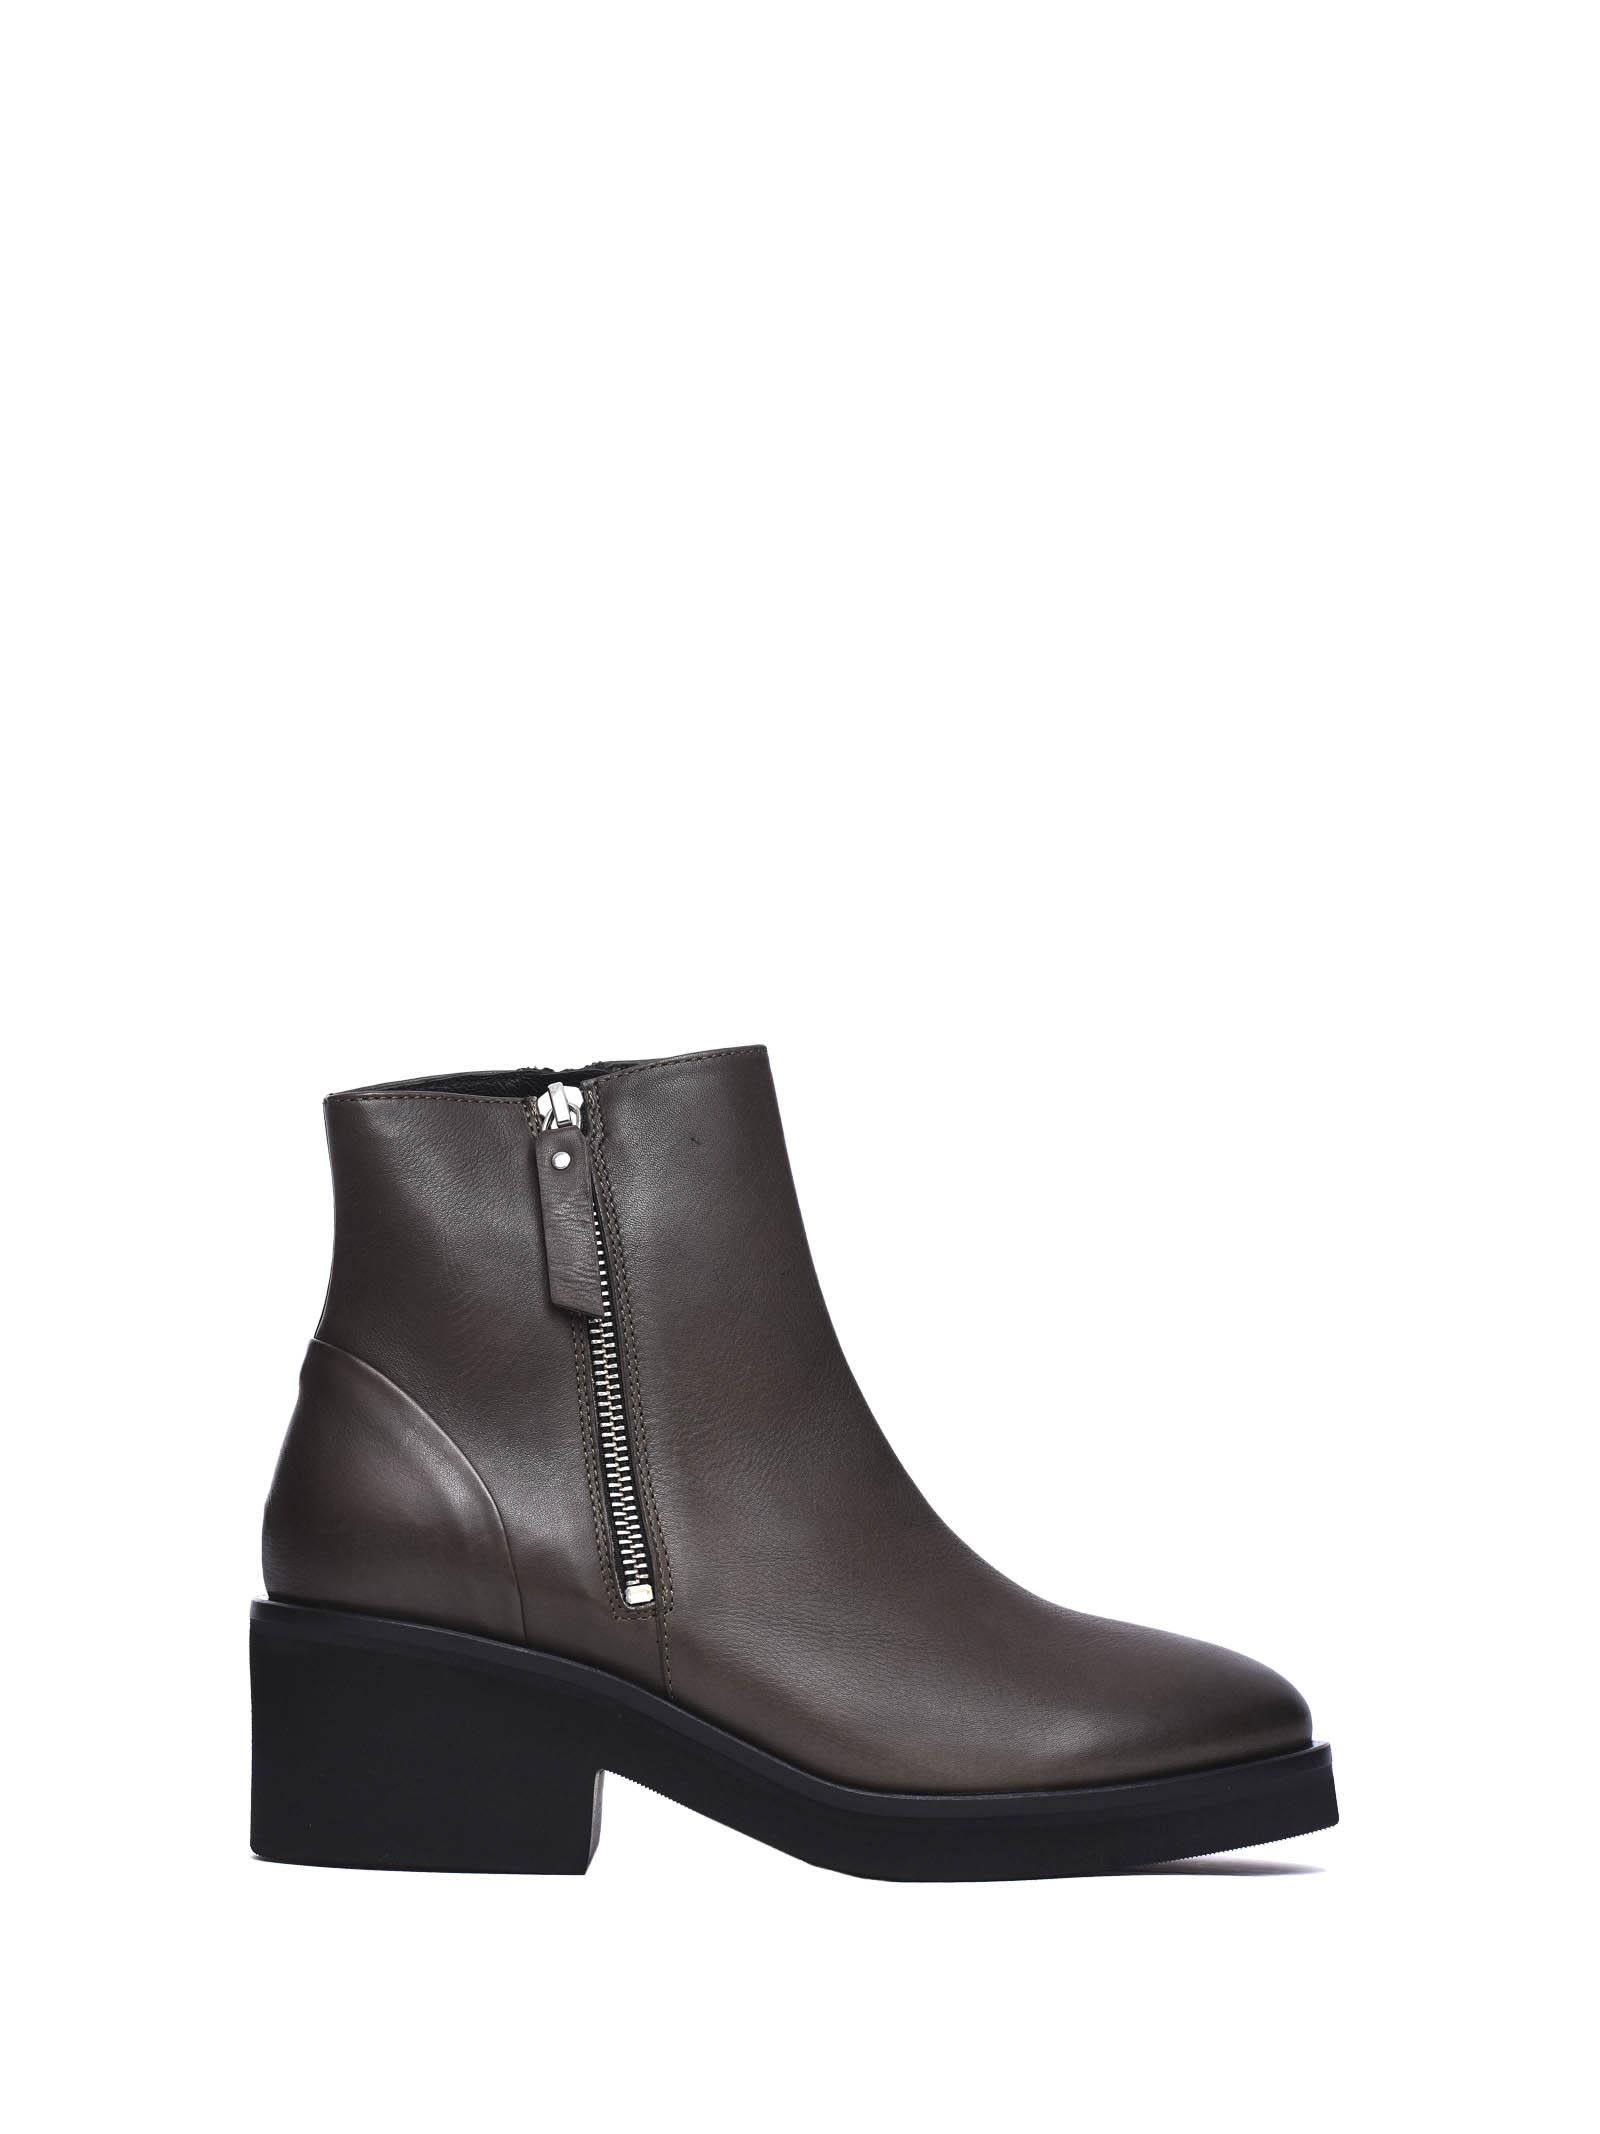 1ce6b263fbb VIC MATIE ANKLE BOOTS WITH SIDE ZIP.  vicmatie  shoes